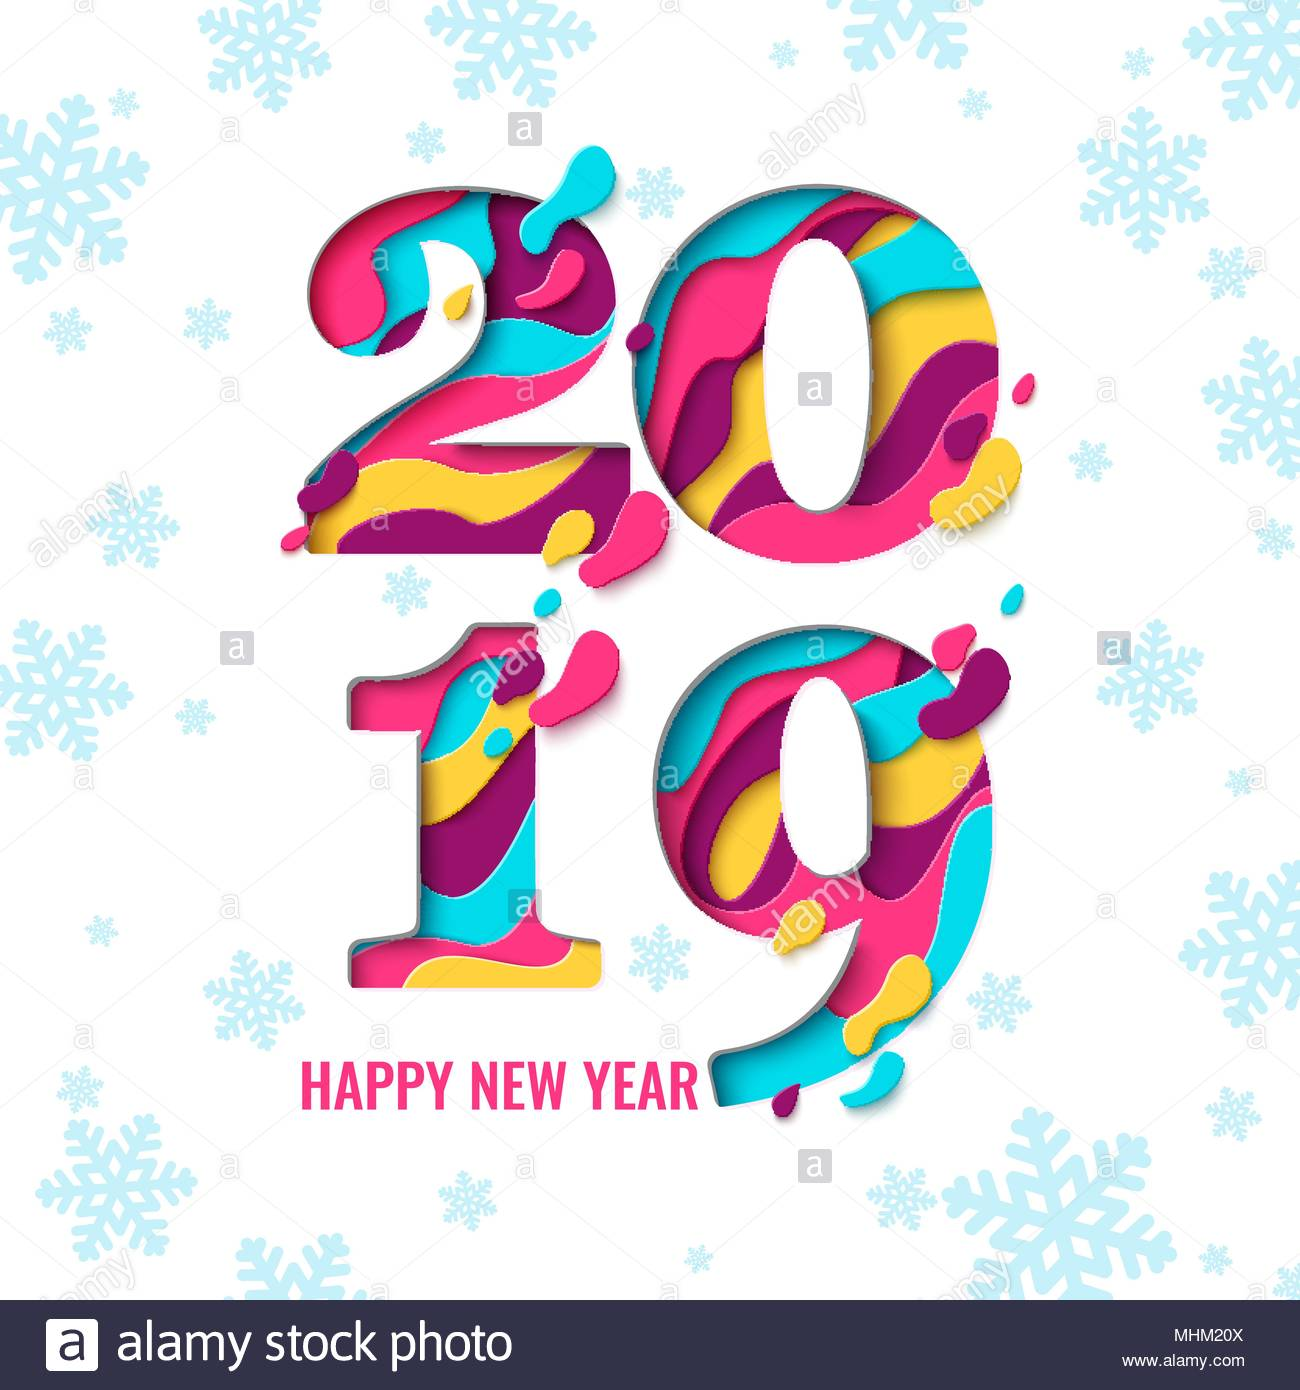 2019 happy new year paper craft holiday background with snowflakes 2019 happy new year paper craft holiday background with snowflakes pattern vector winter holiday greeting card with paper cut numbers 2019 design for m4hsunfo